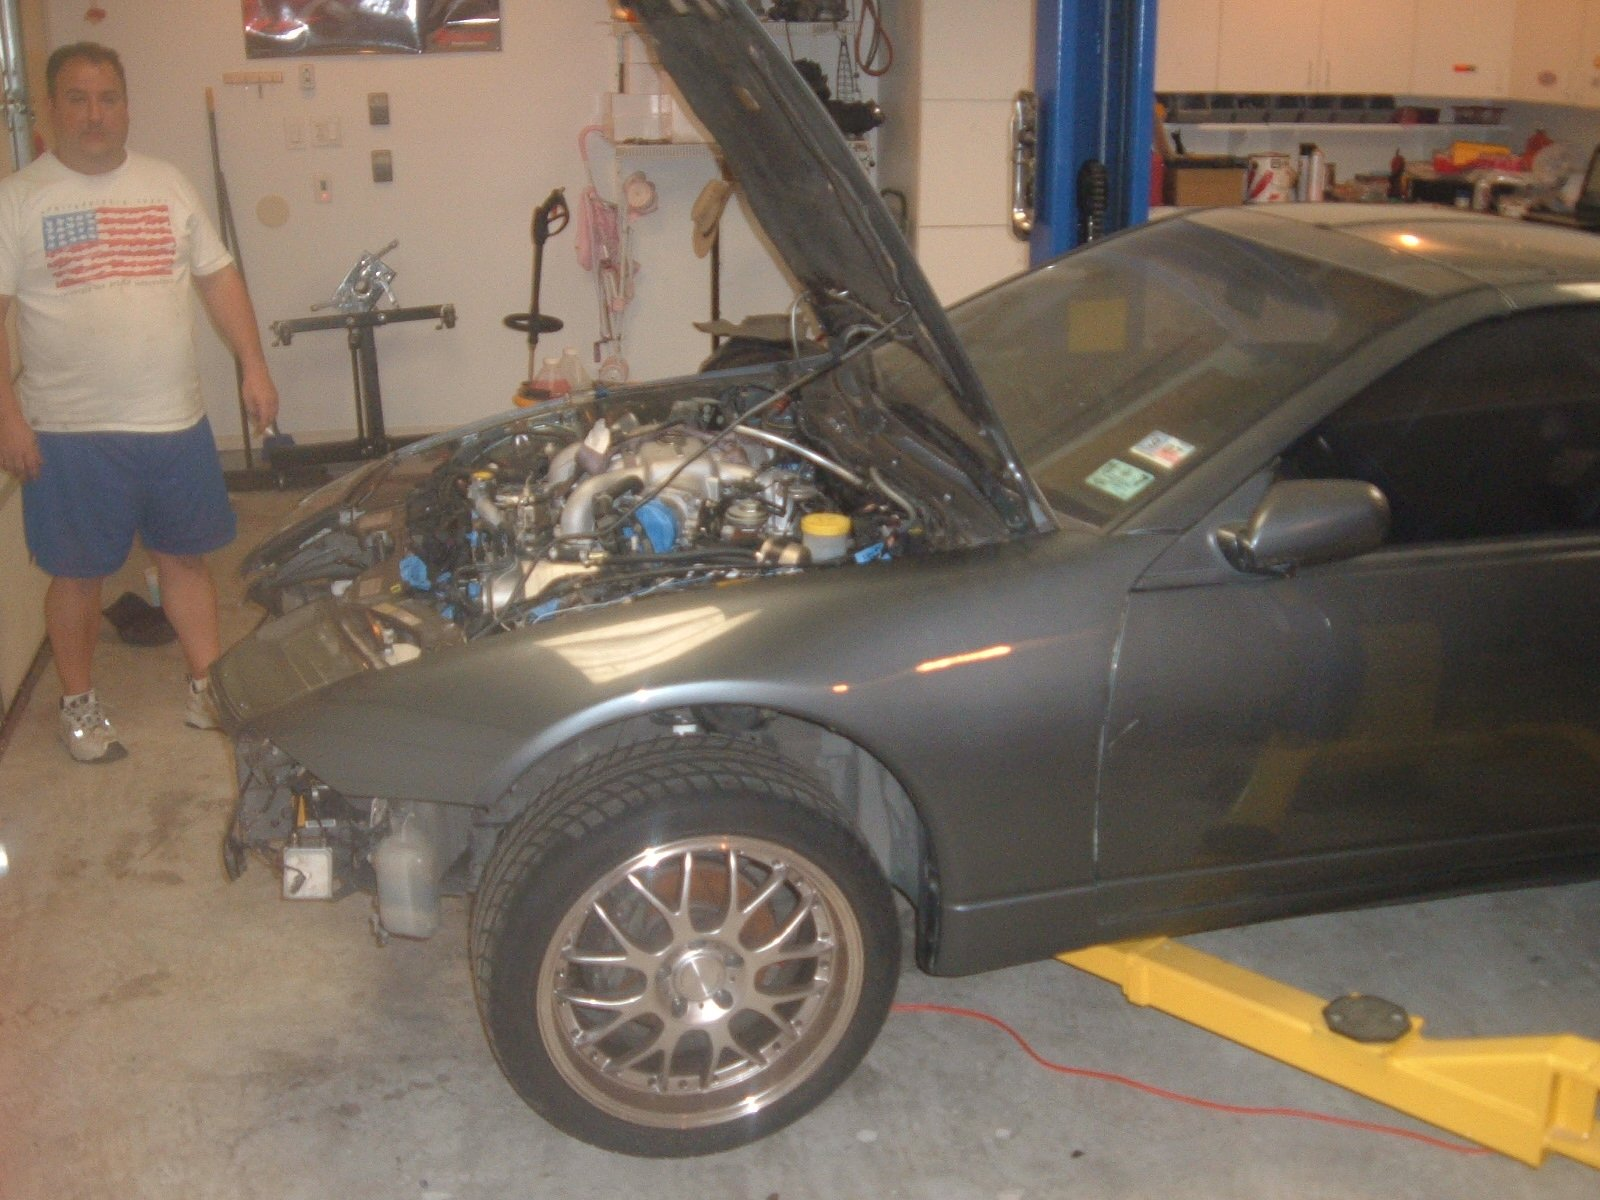 Nissan 350z Forum 370z Tech Forums View Single Post Wiring Diagram Going V8 Looking For Engine Diagrams Sychmatics 06